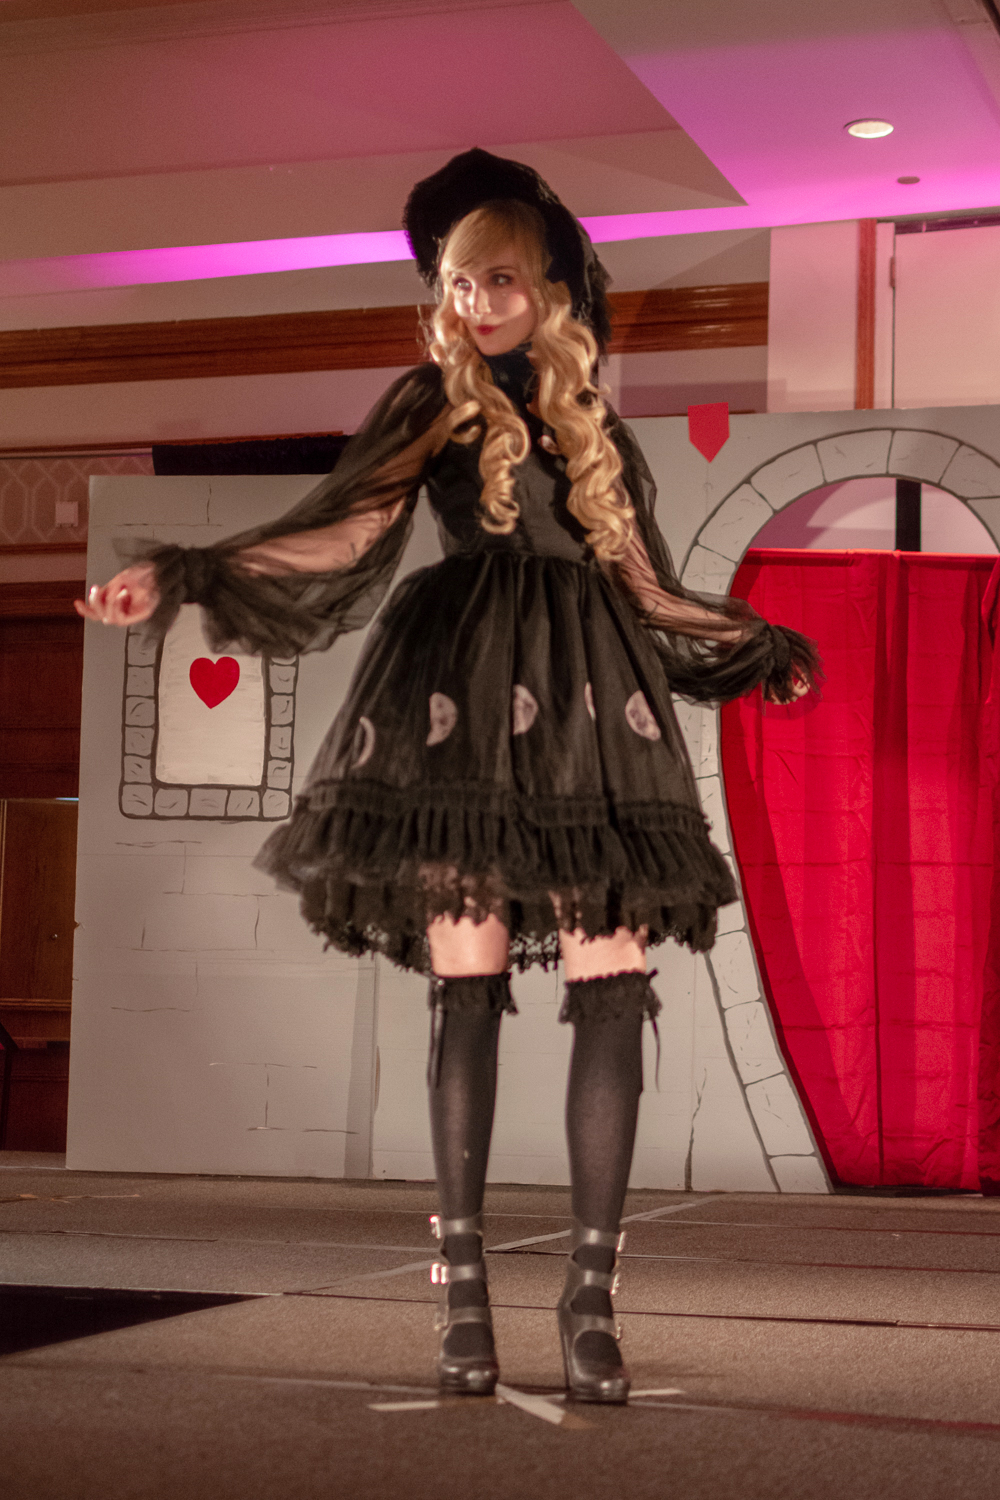 deltahcon2018_fashion show-7.jpg